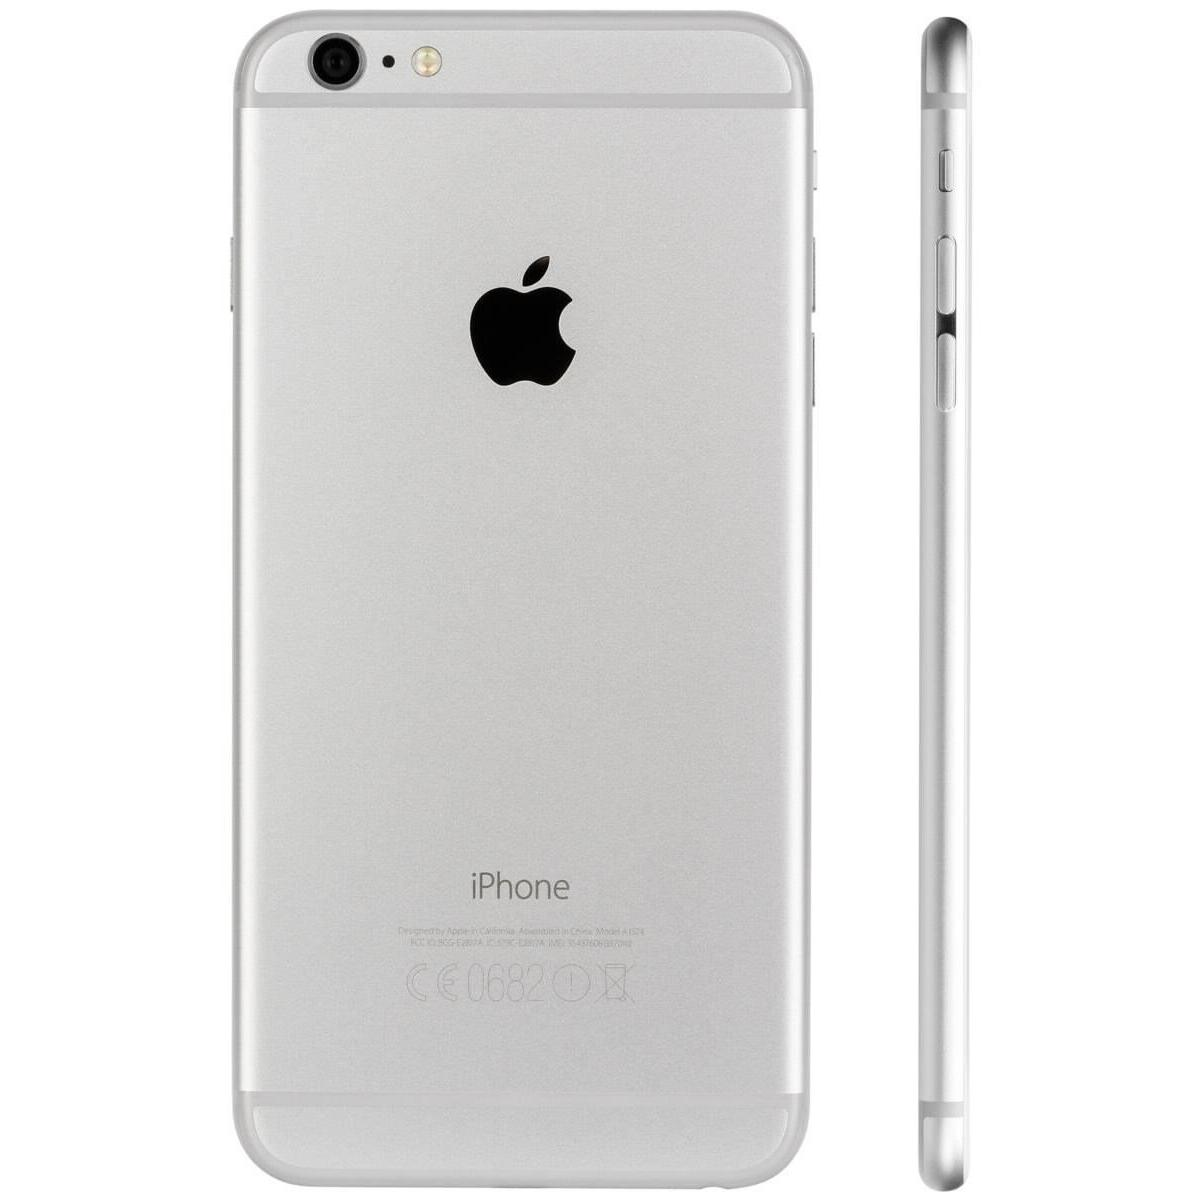 iPhone 6 Plus 128 GB - Plata - Libre